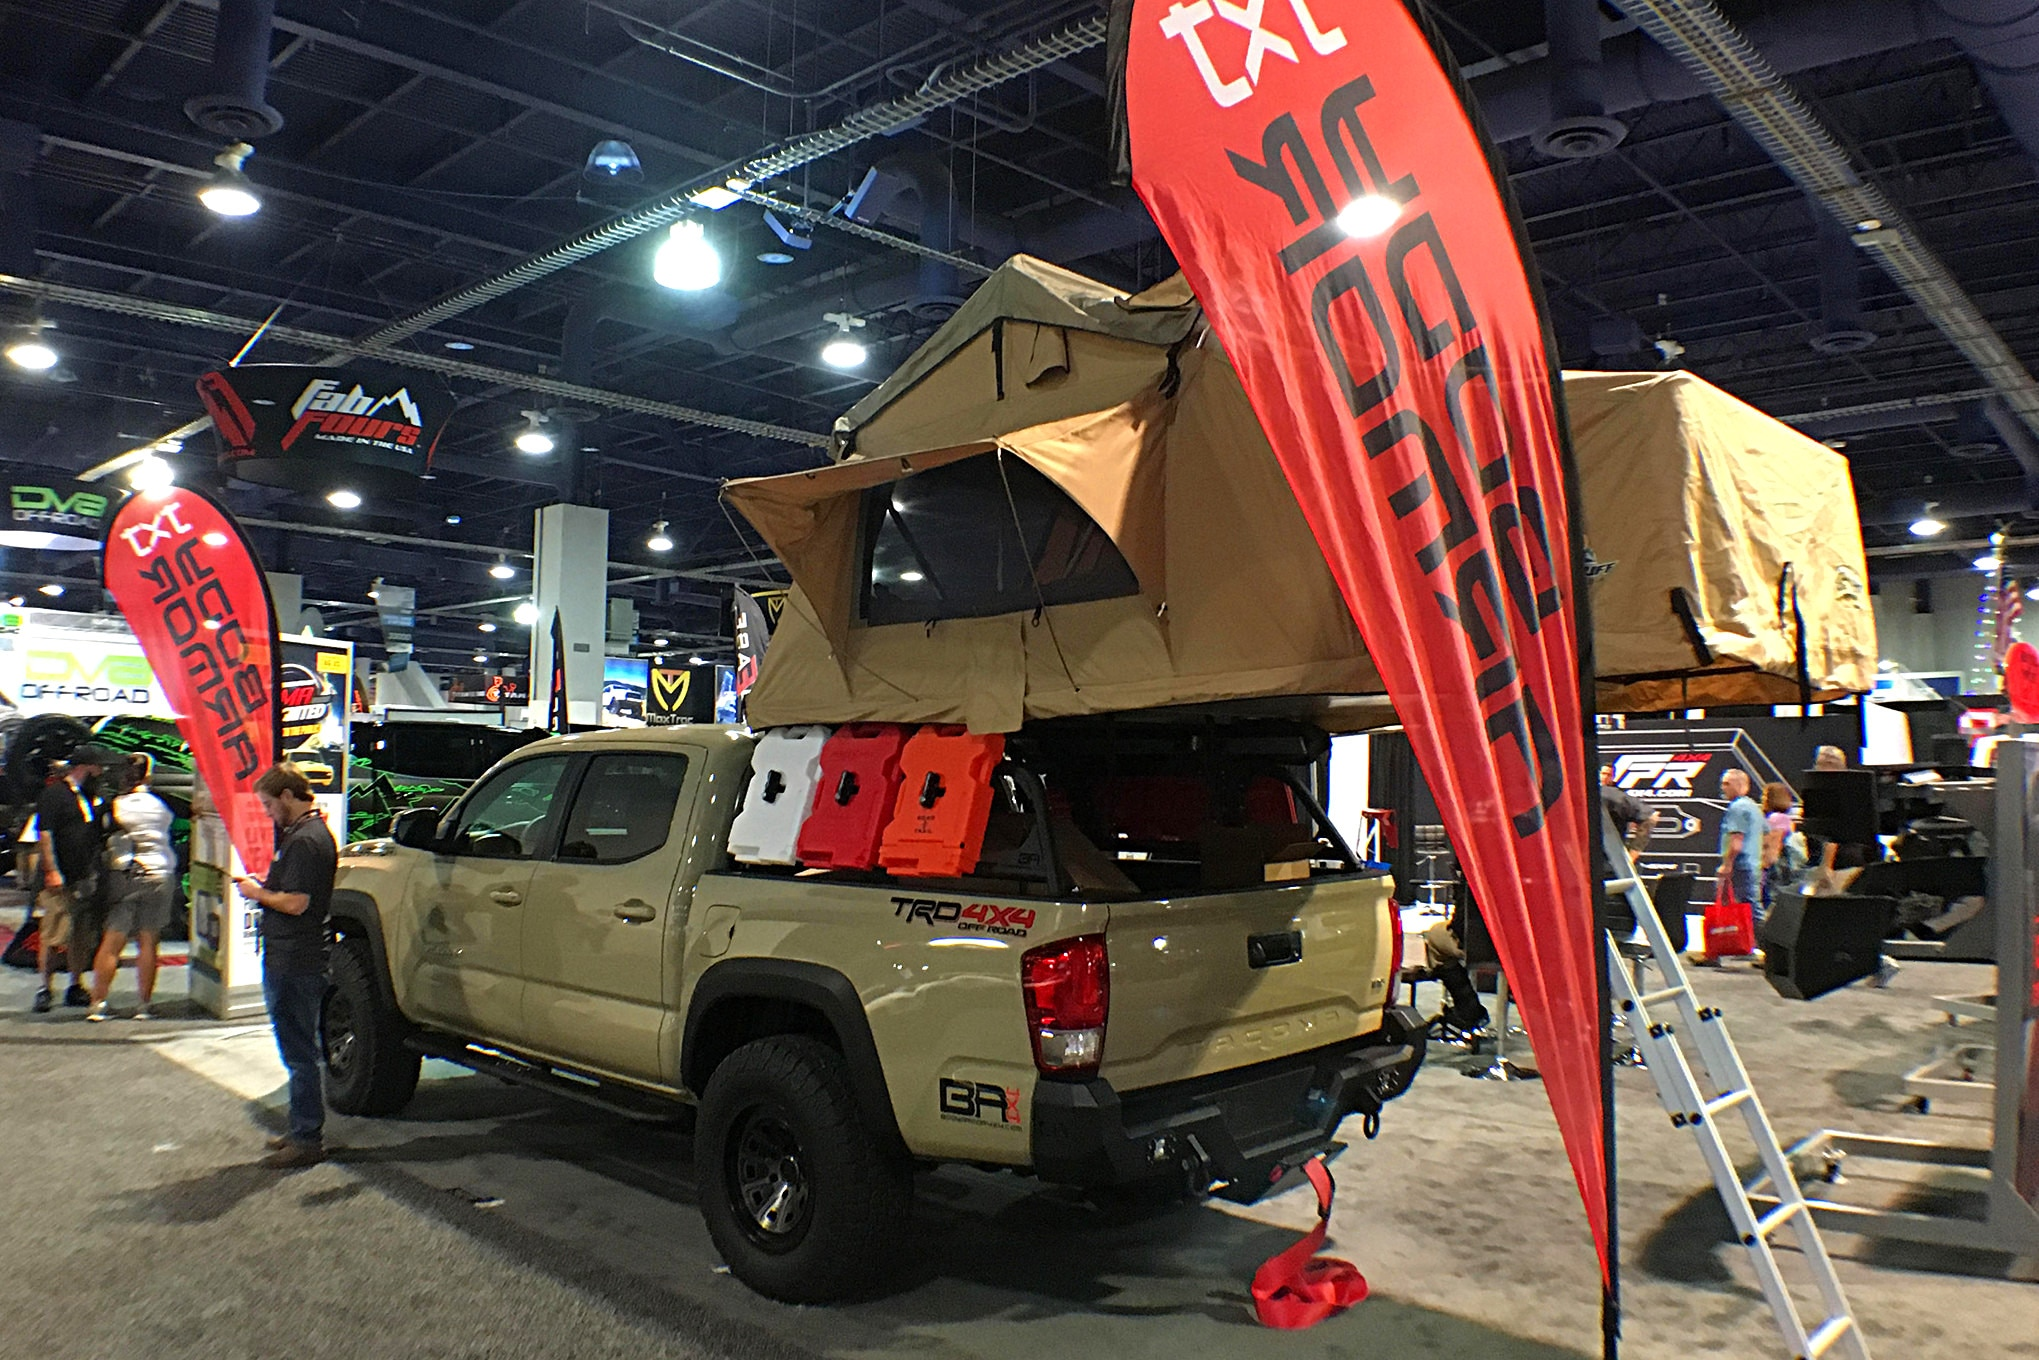 Body Armor showed that the Overlanding craze is a real thing.